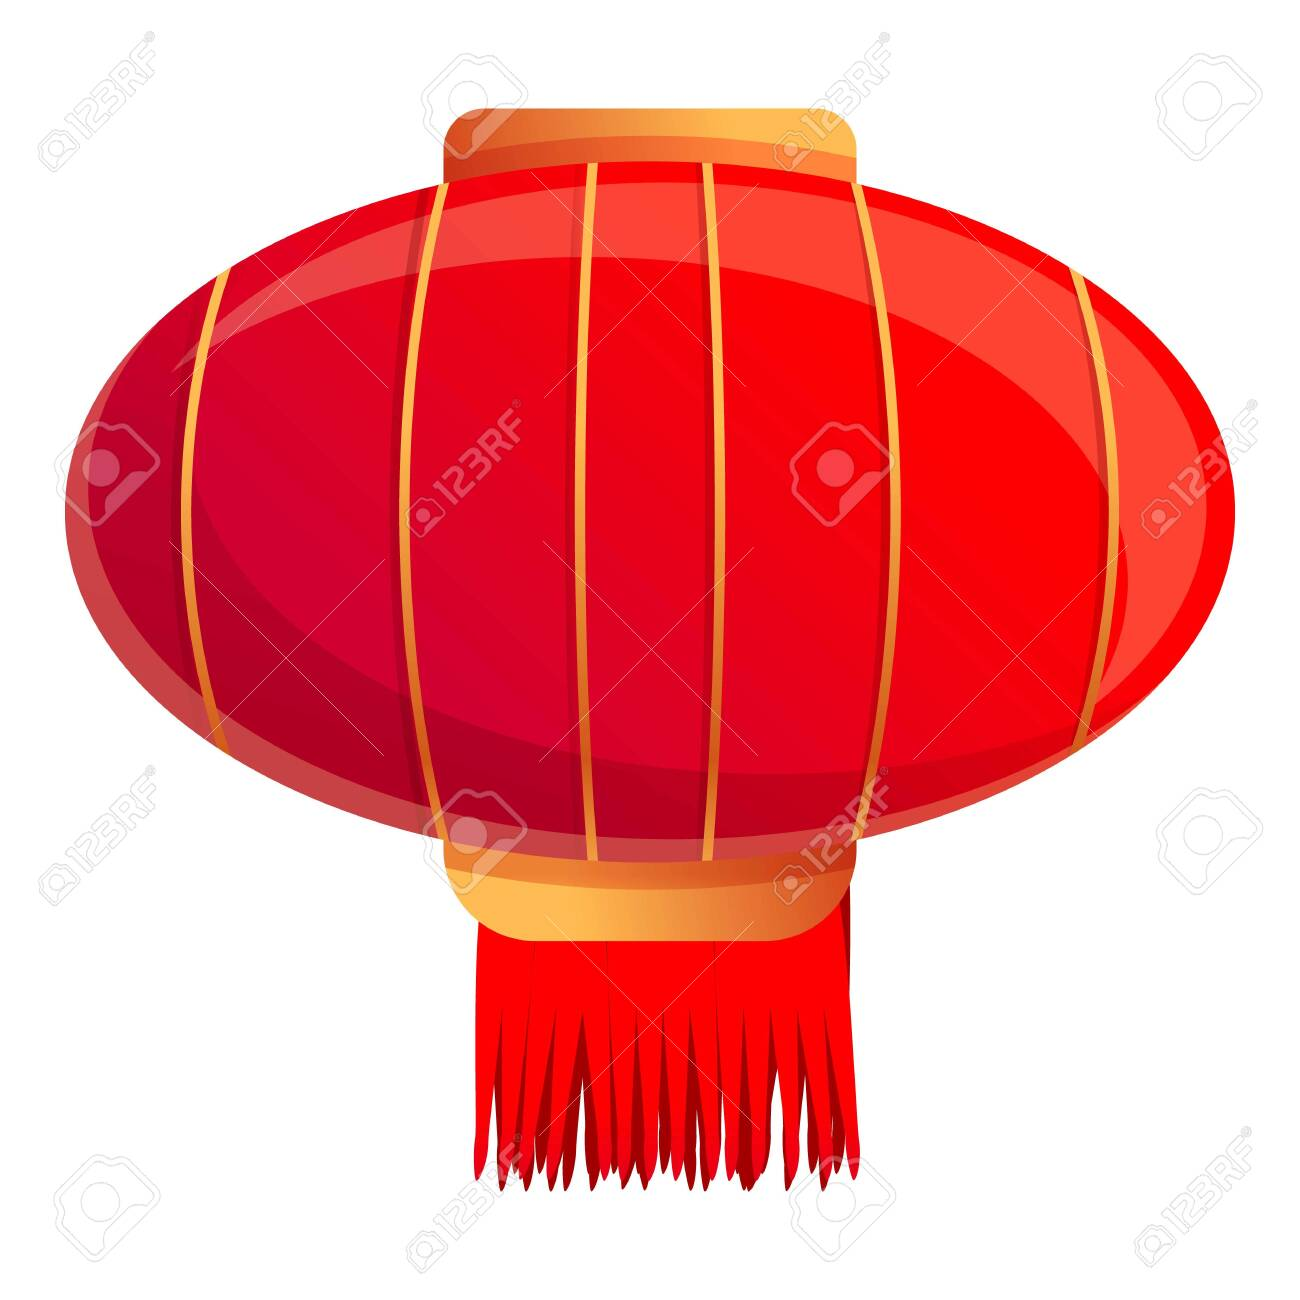 Street Chinese Lantern Icon Cartoon Of Street Chinese Lantern Royalty Free Cliparts Vectors And Stock Illustration Image 143841147